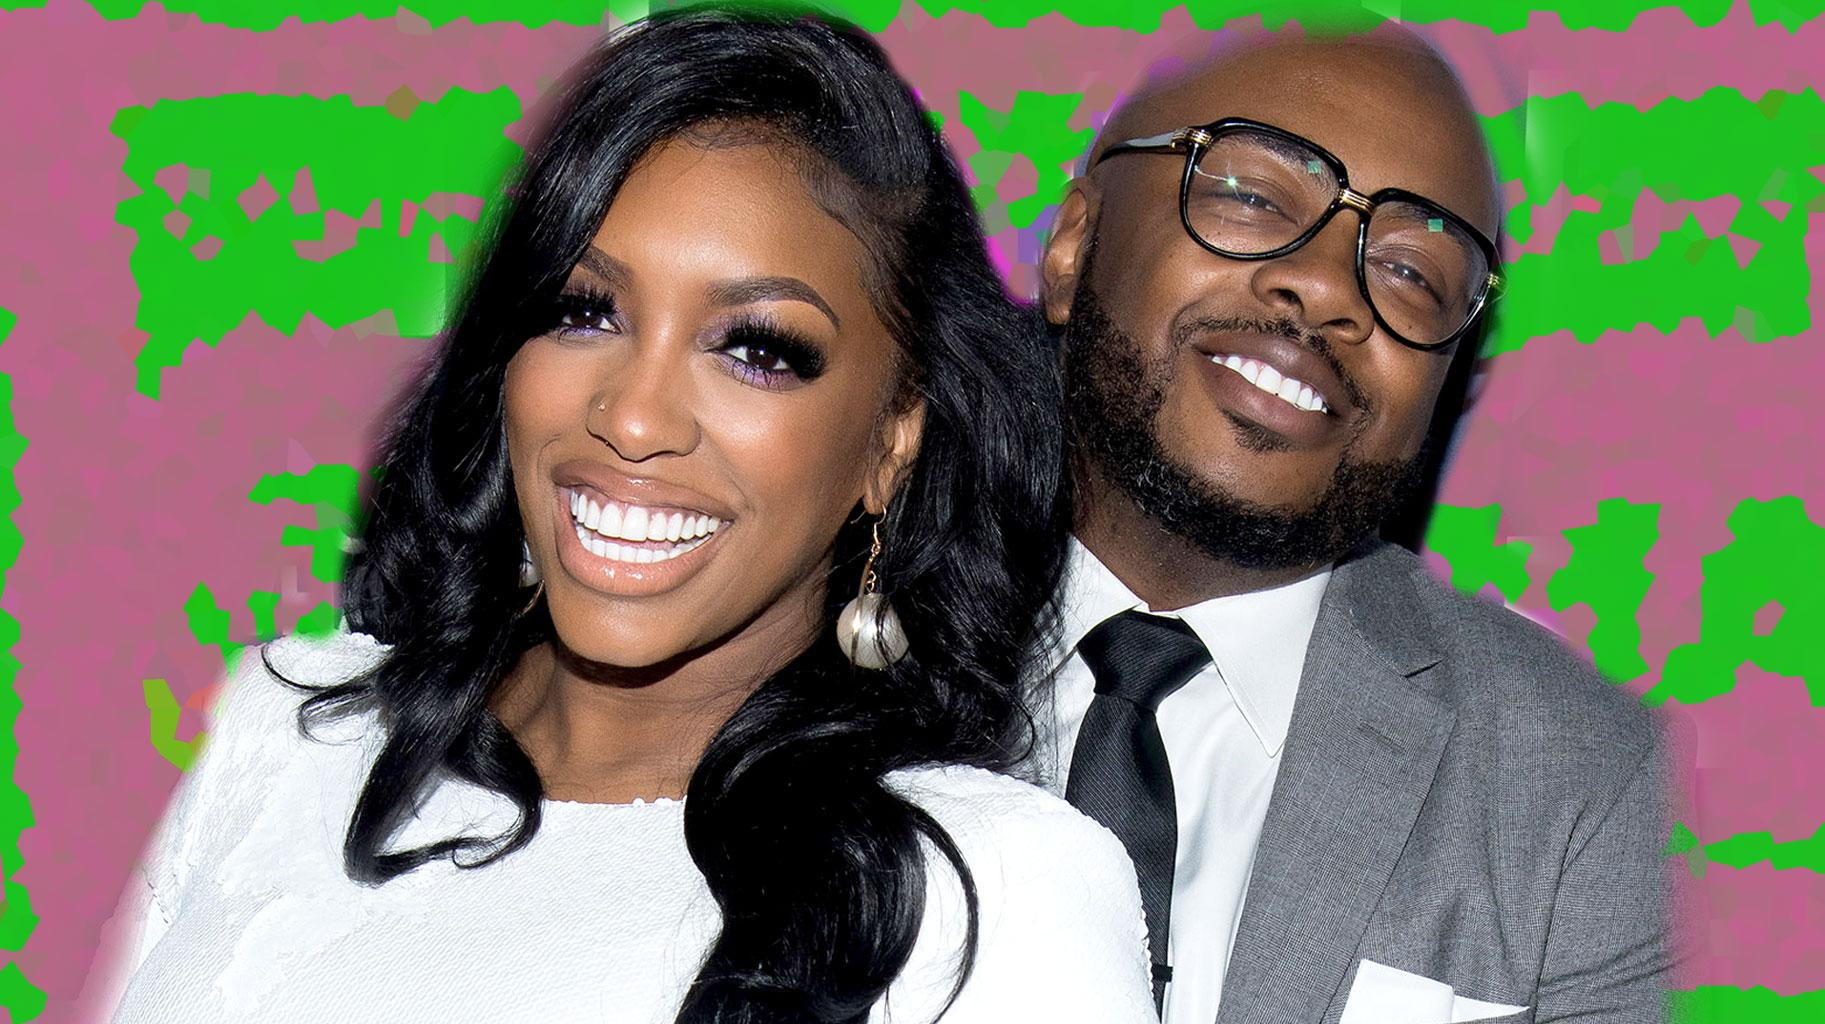 Dennis McKinley Says Porsha Williams And Their Baby Are His Everything In Response To Those Breakup Speculations!